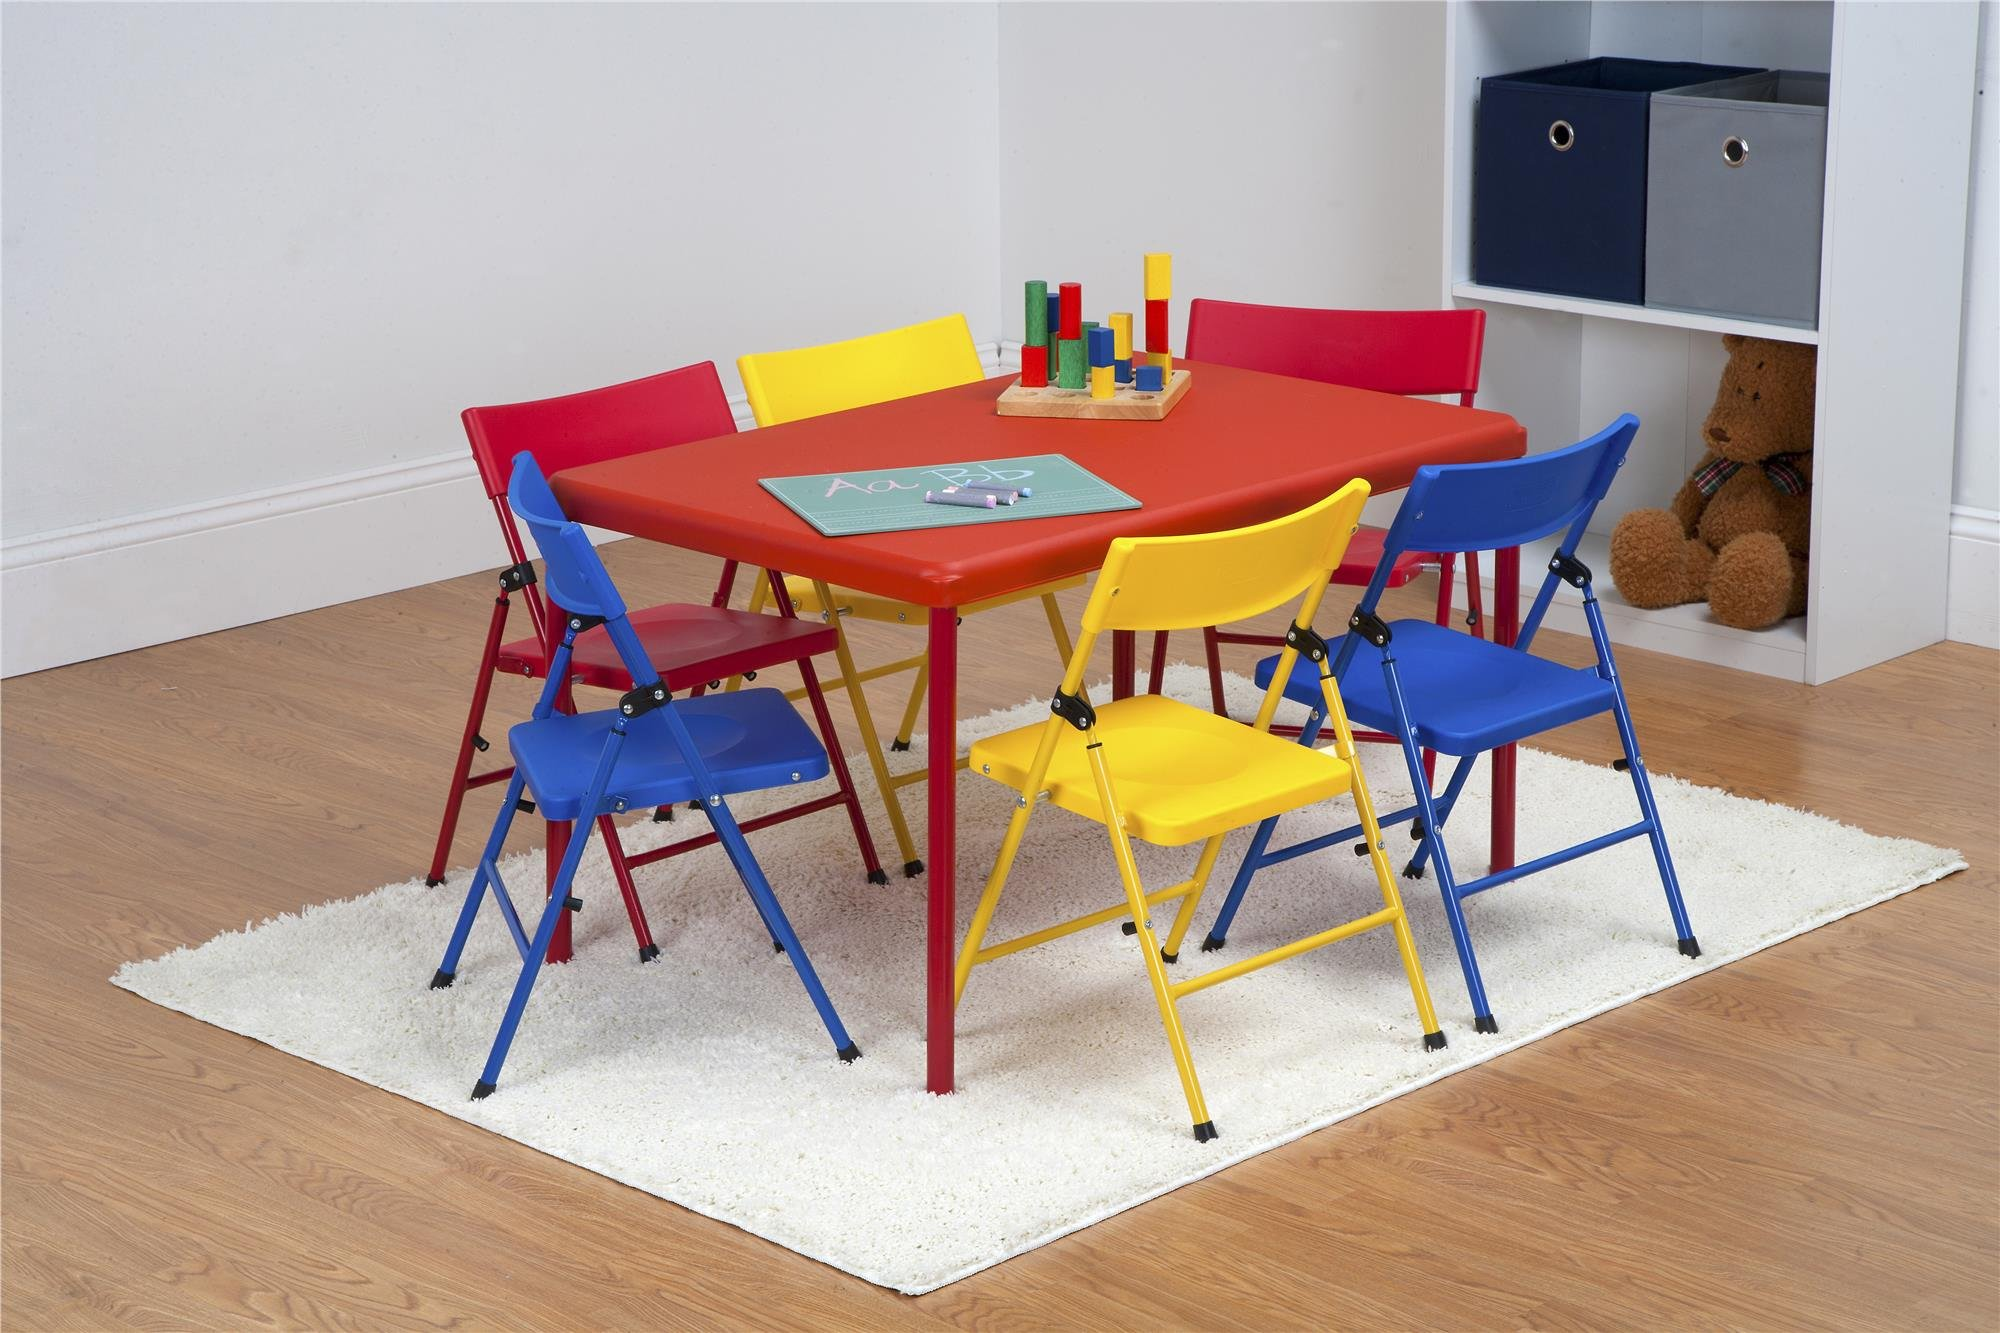 Cosco 7 Piece Children's Juvenile Set with Pinch Free Folding Chairs & Screw in Leg Table by Cosco Kids Furniture